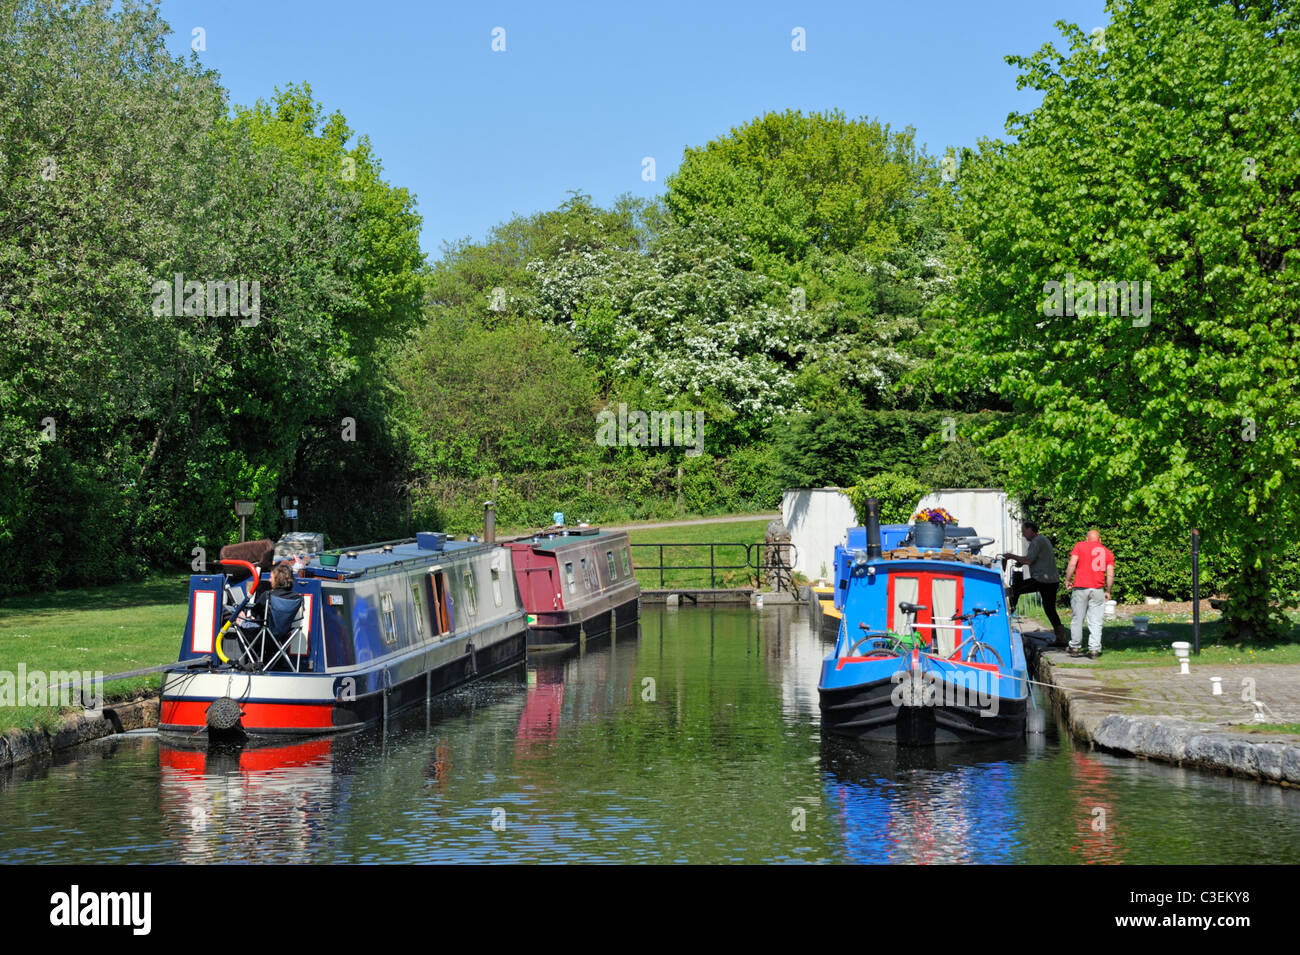 Termination of the Southern Reach of the Lancaster to Kendal canal. Tewitfield, Cumbria, England, United Kingdom, - Stock Image